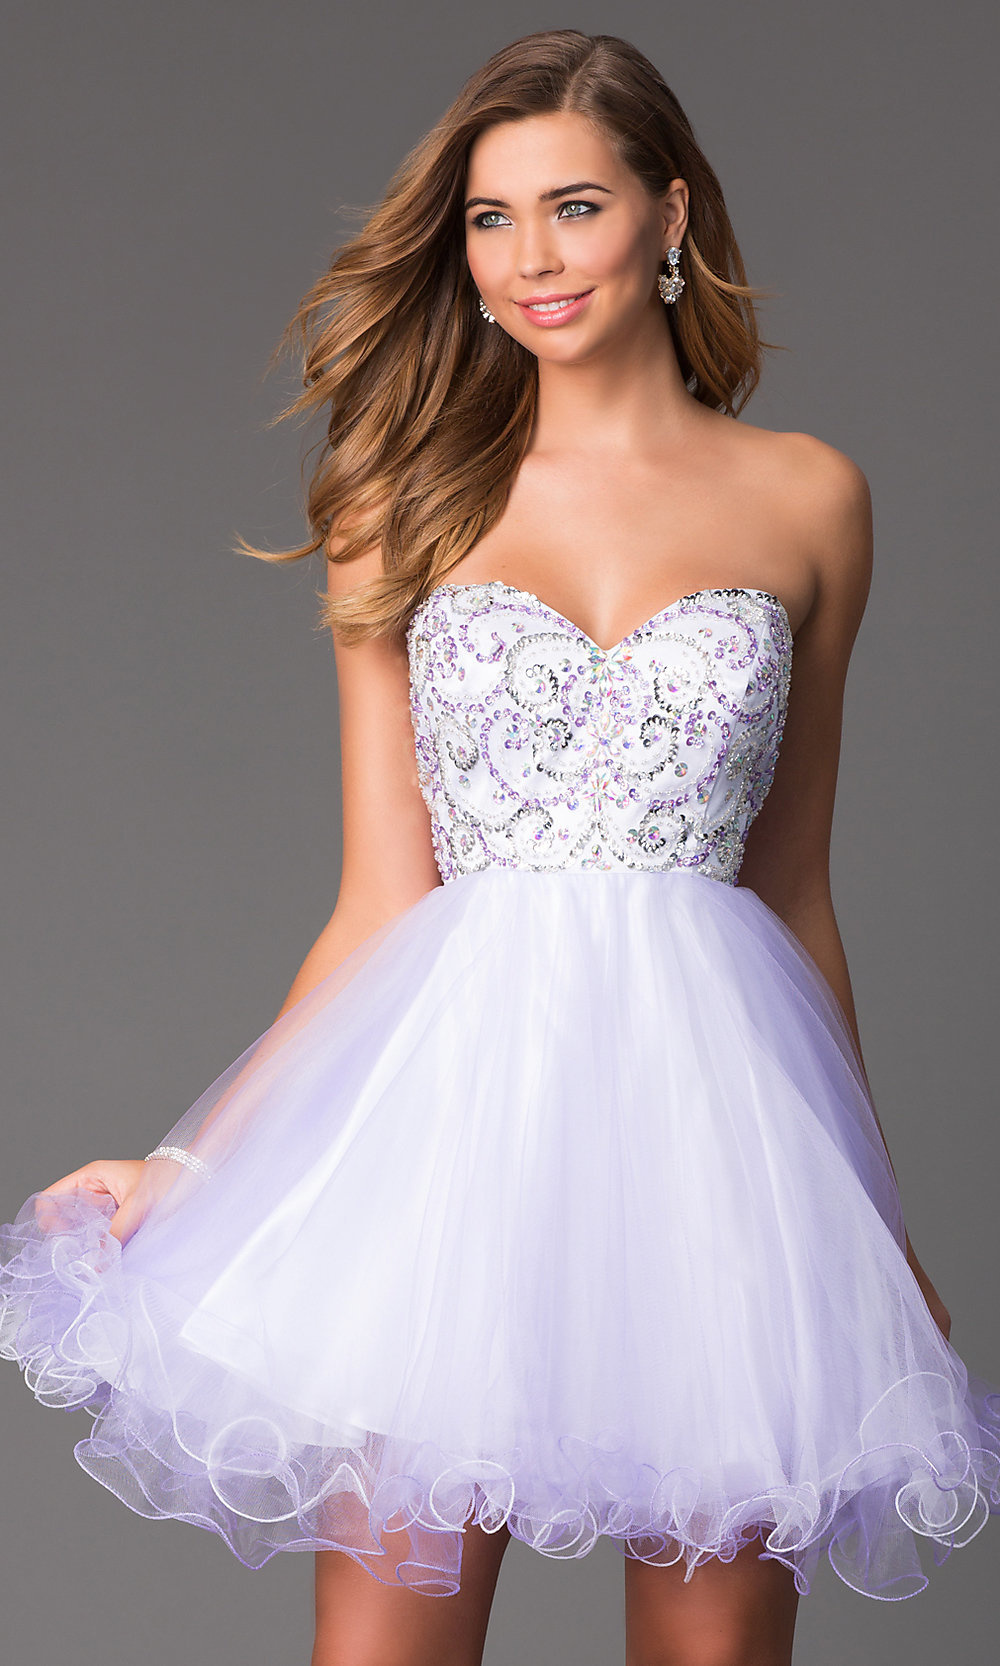 Short Strapless Prom Dress Corset Back Party Dress